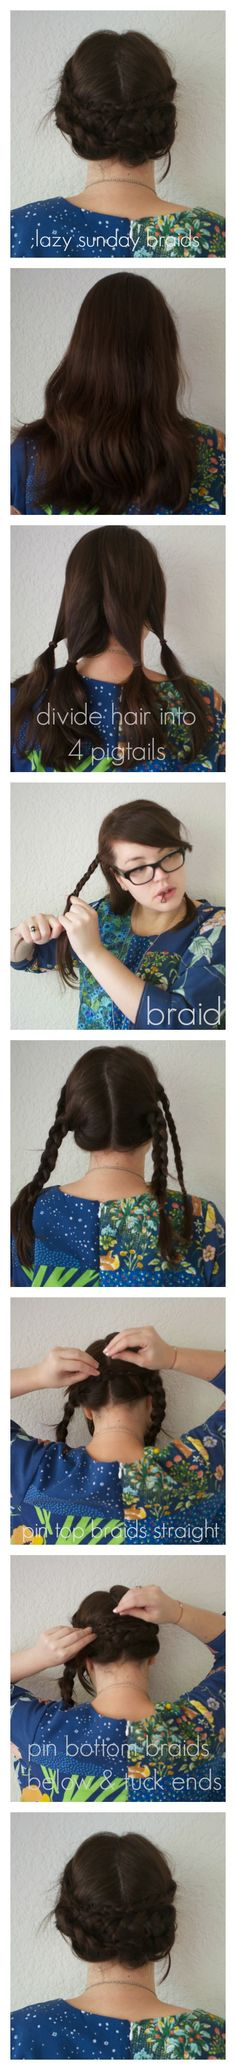 sunday braids tutorial from Frocks and Frou Frou - this might even work with my bike helmet on!